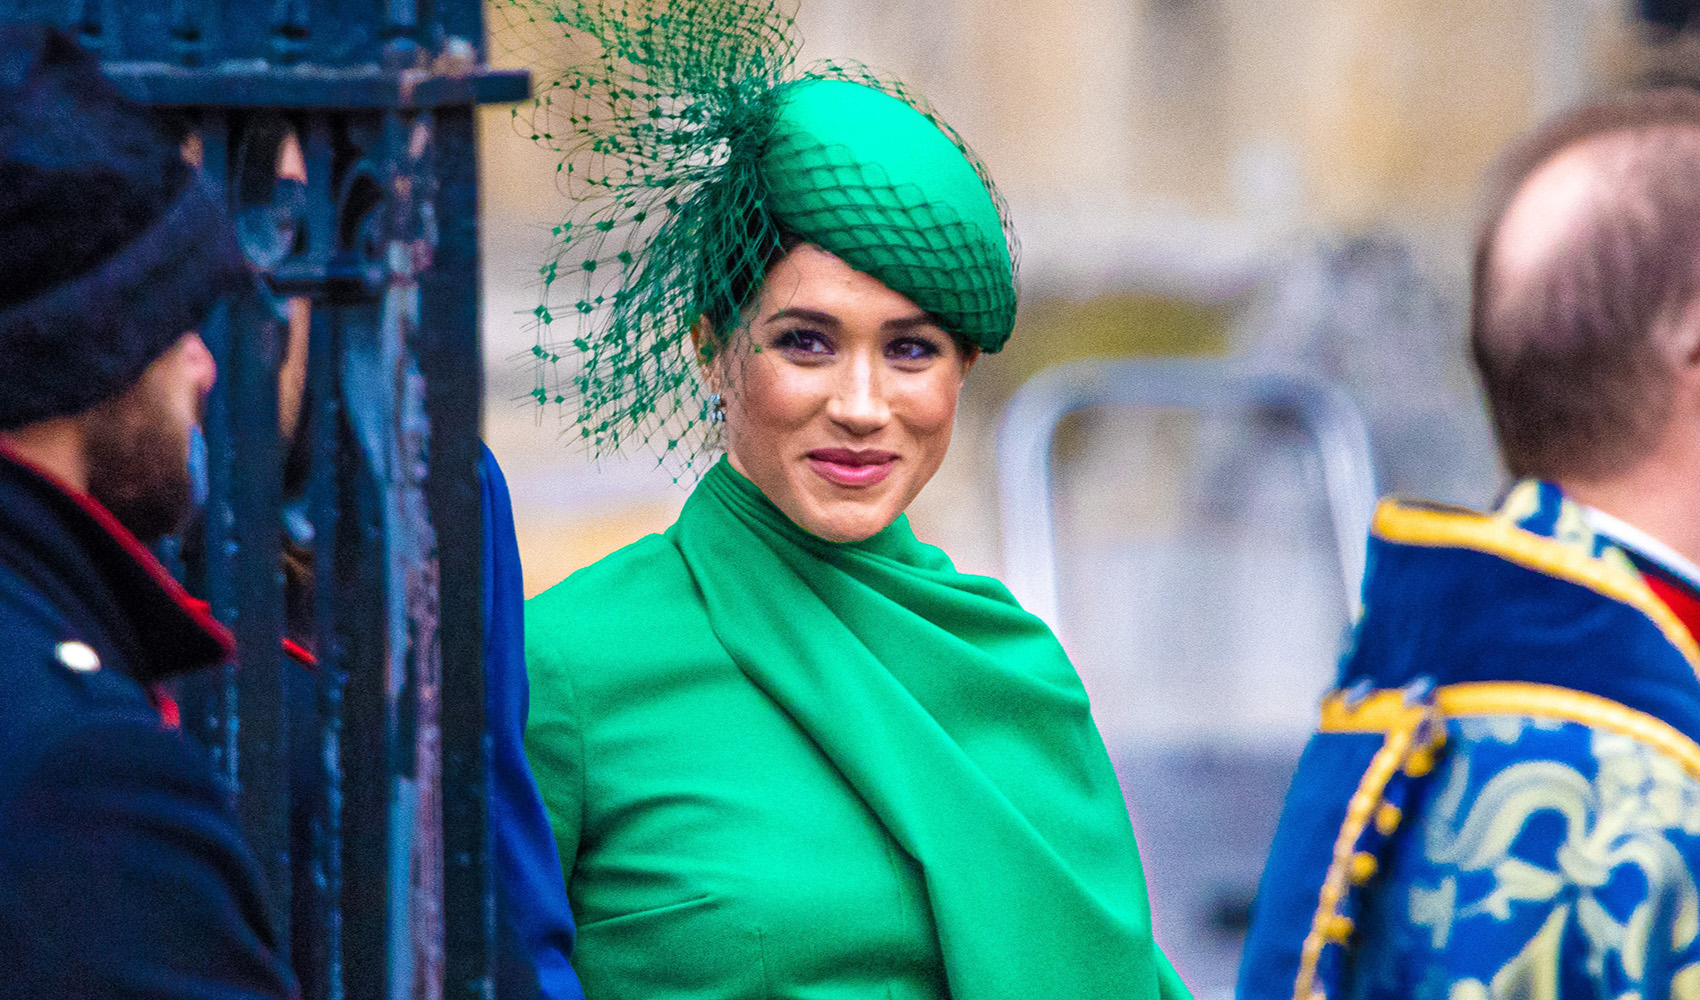 Meghan's first job announced as Disney role after she quits royal life